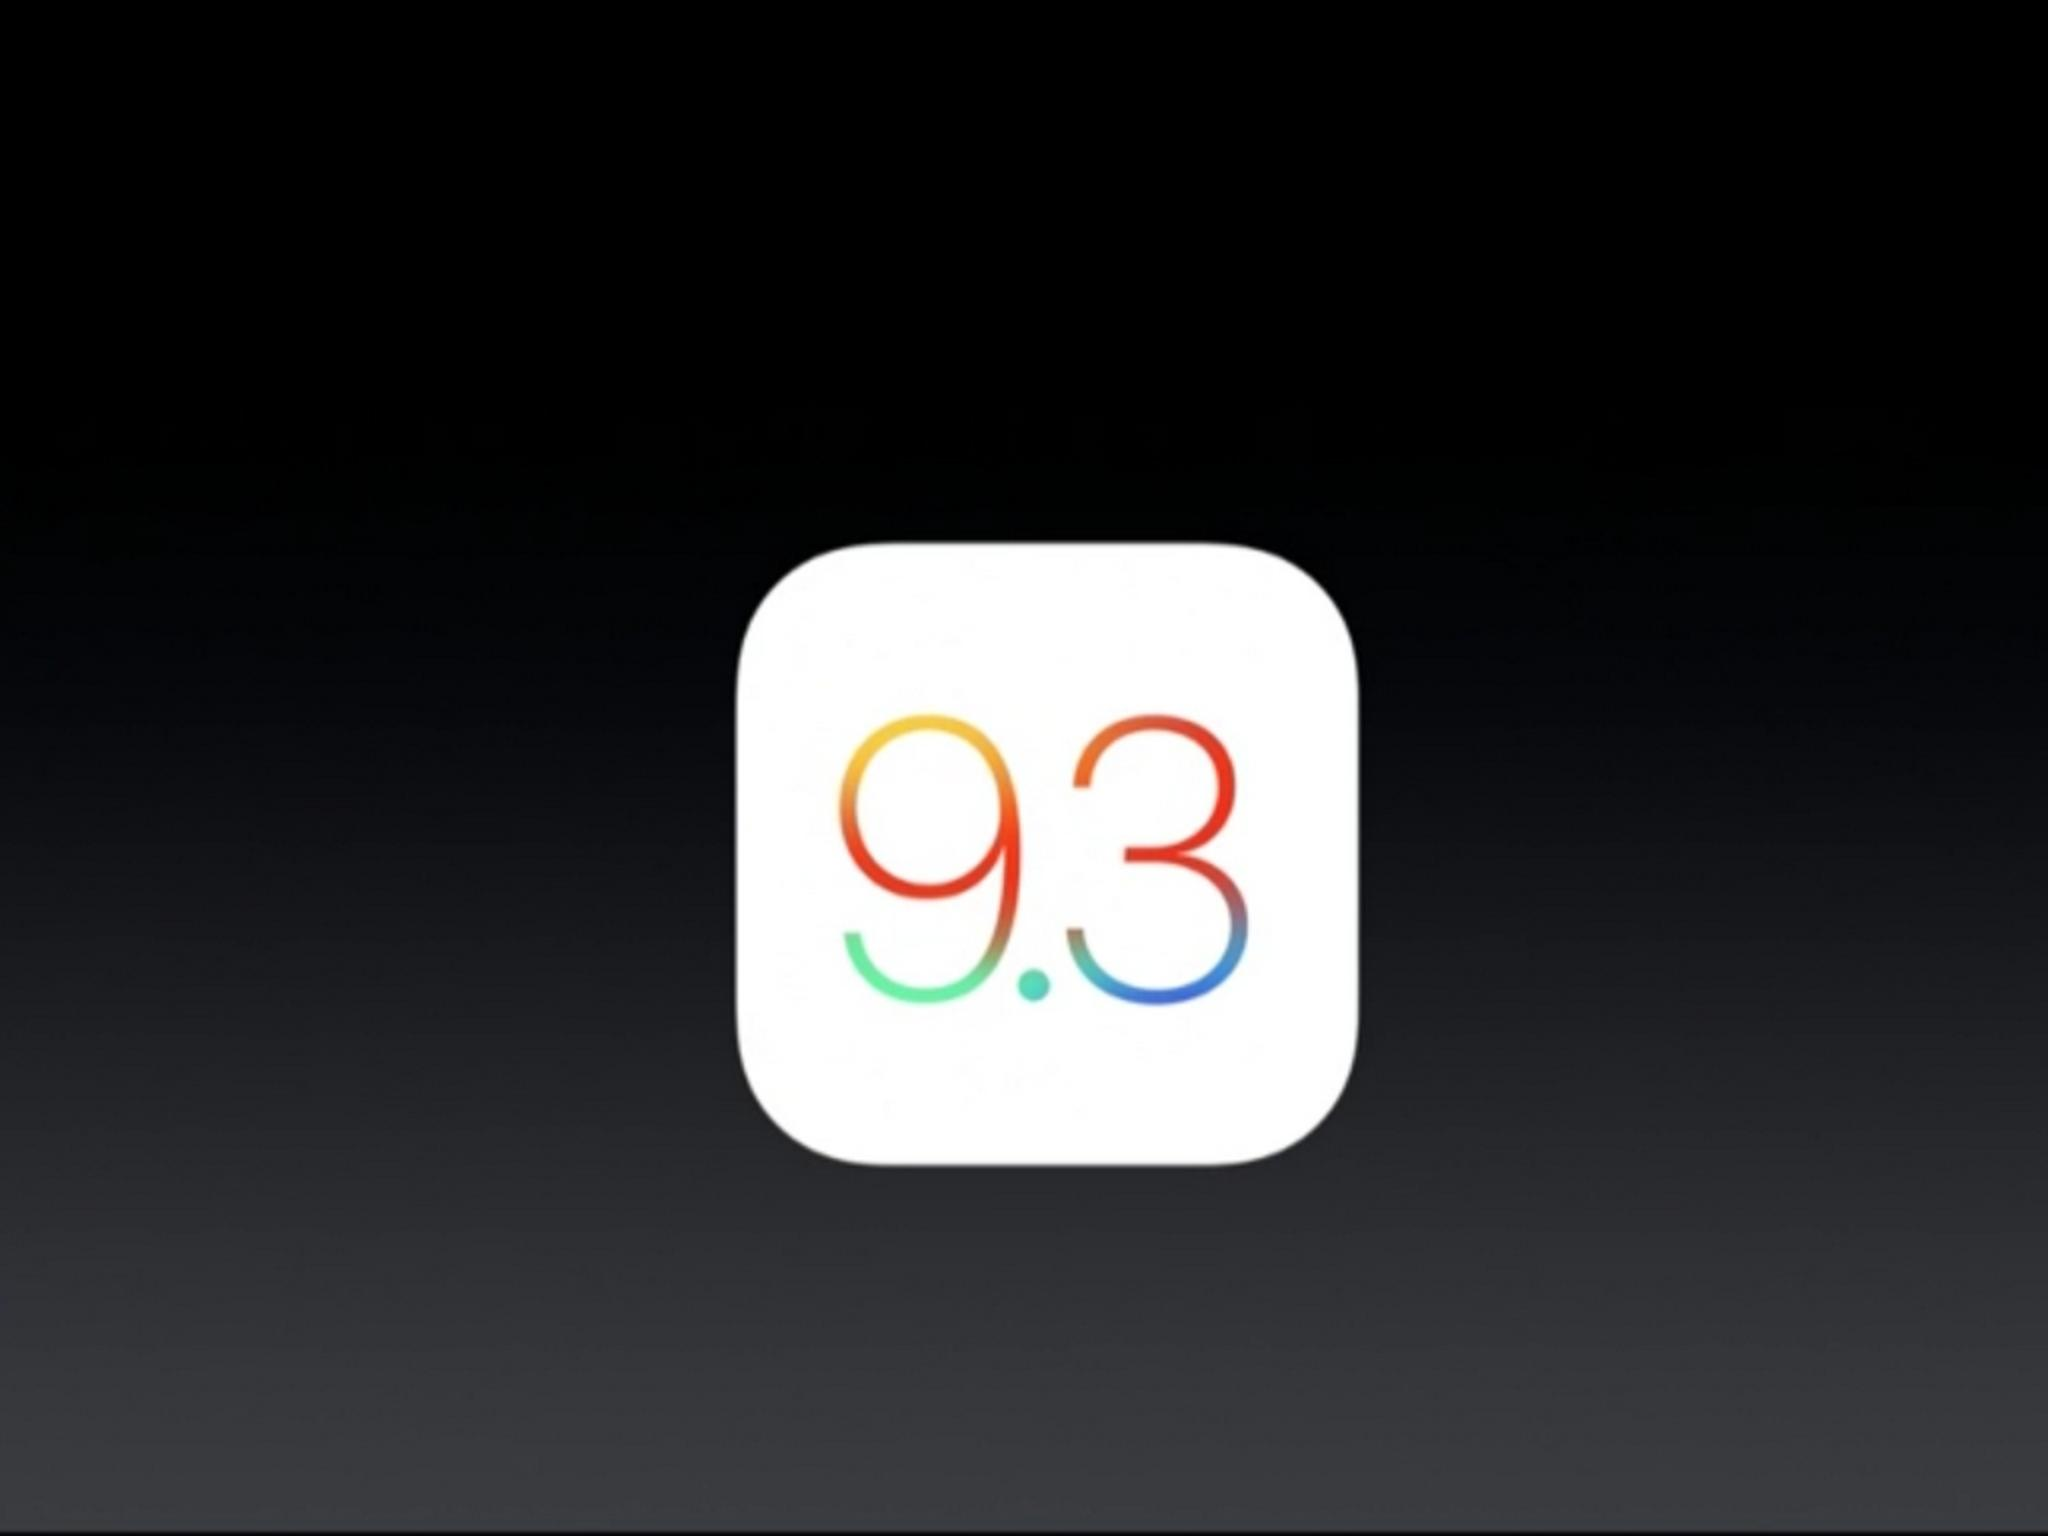 iOS 9.3 soll stabiler als Android 6.0 Marshmallow sein.